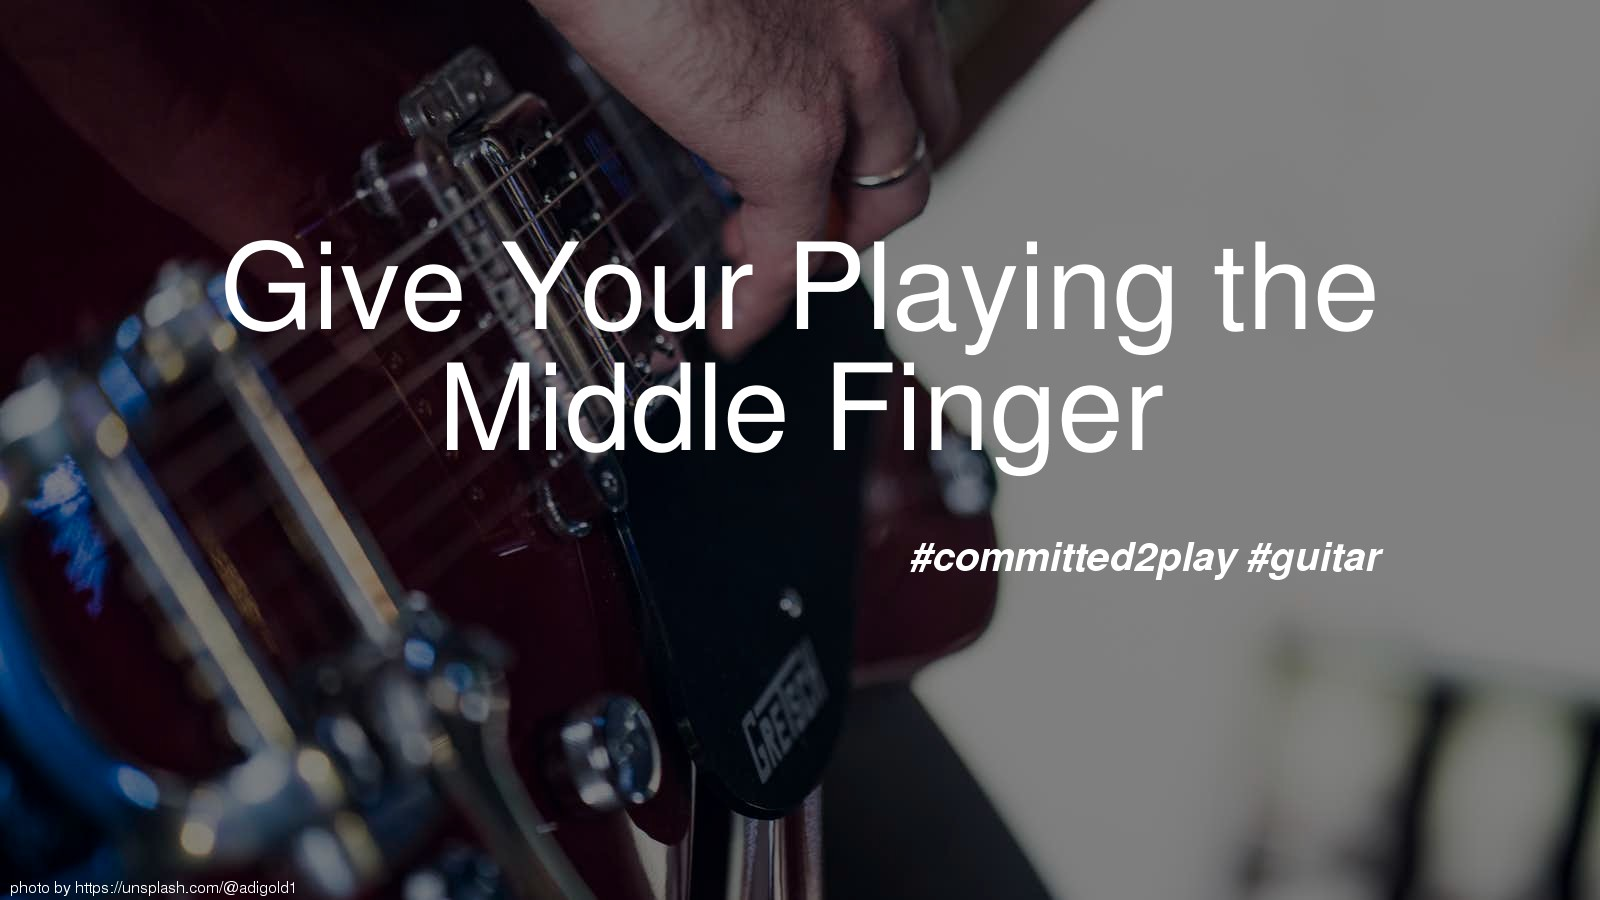 Give Your Playing the Middle Finger